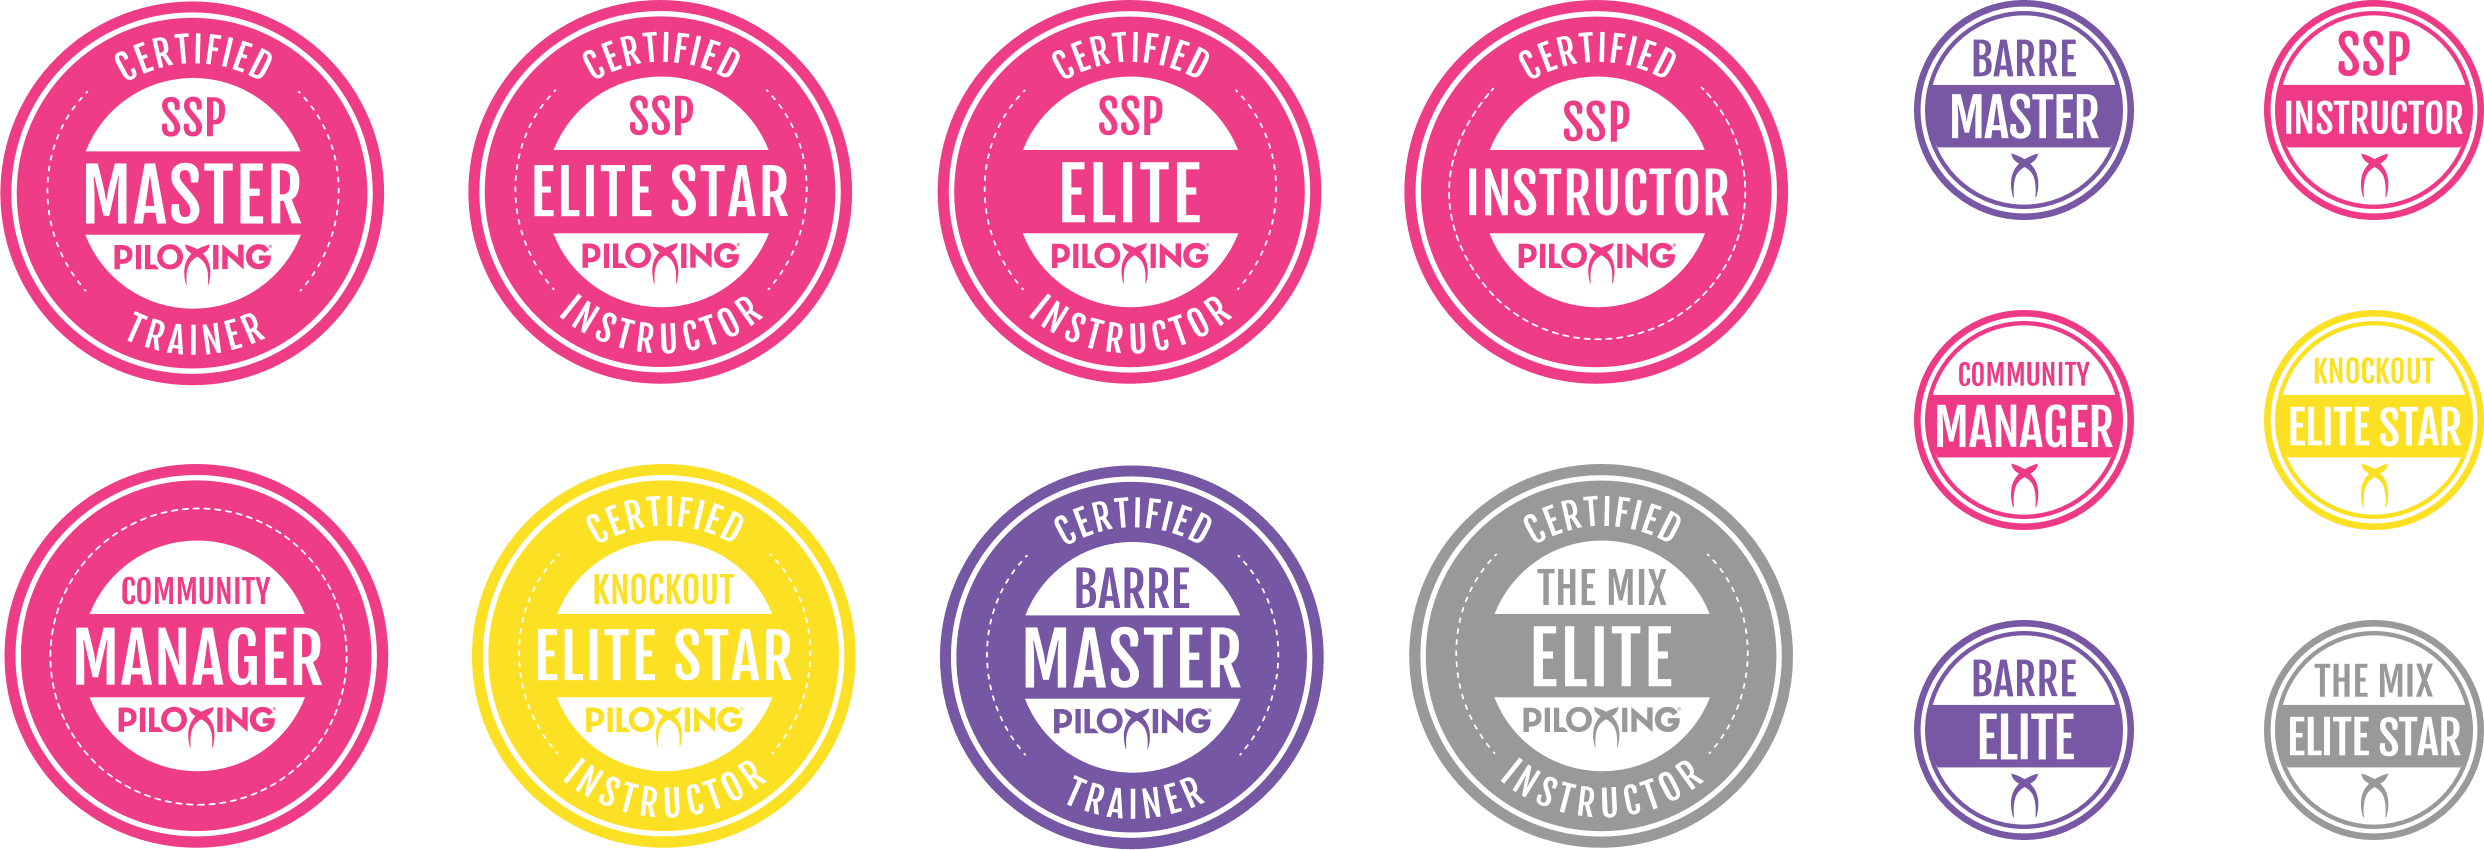 Custom illustrated instructor level badges for social profiles